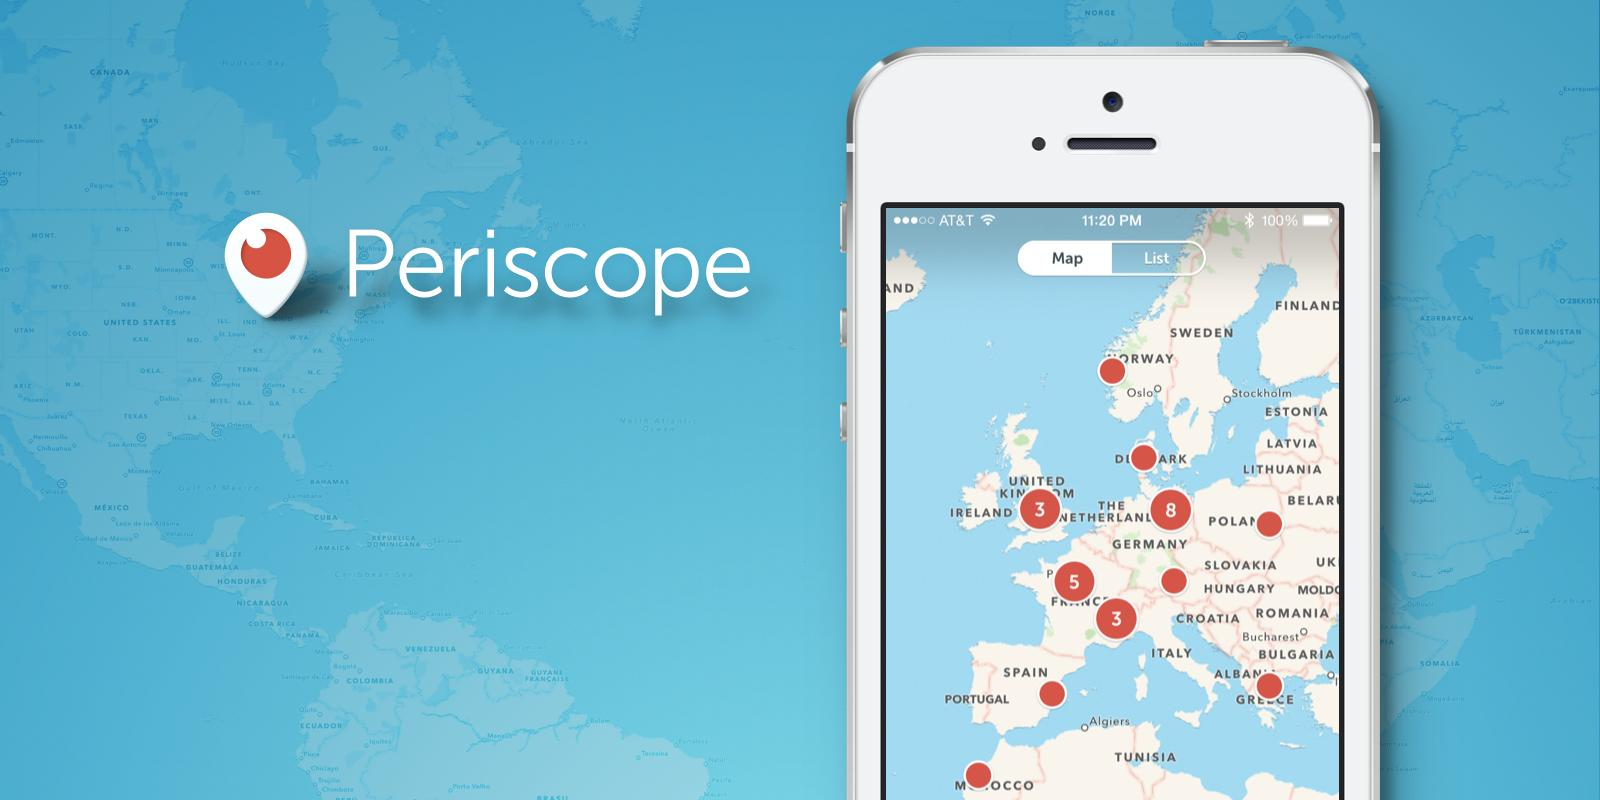 wersm-periscope-map